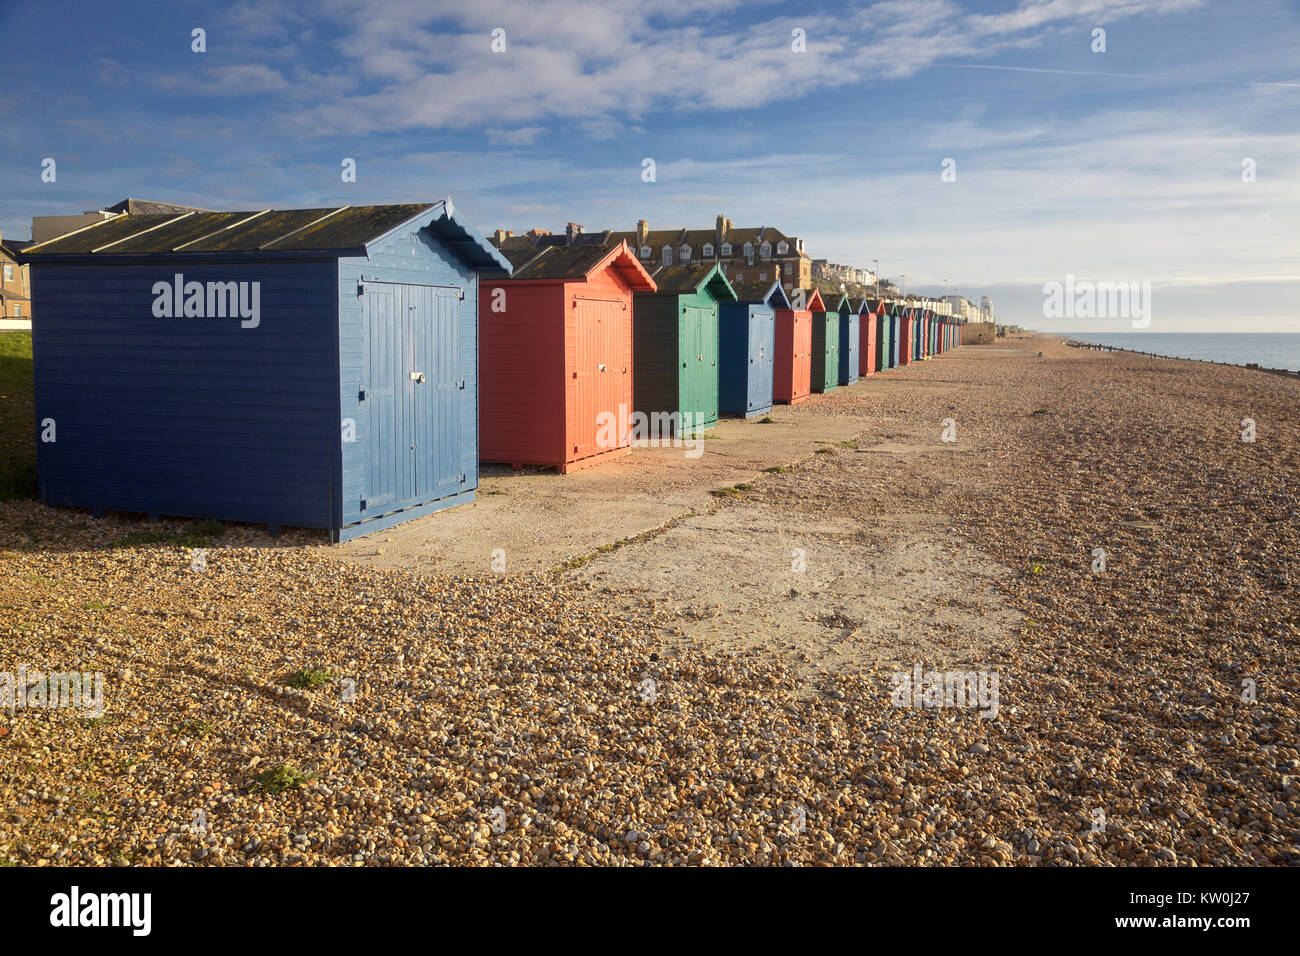 A row of beach huts in Hasting, East Sussex, England - Stock Image